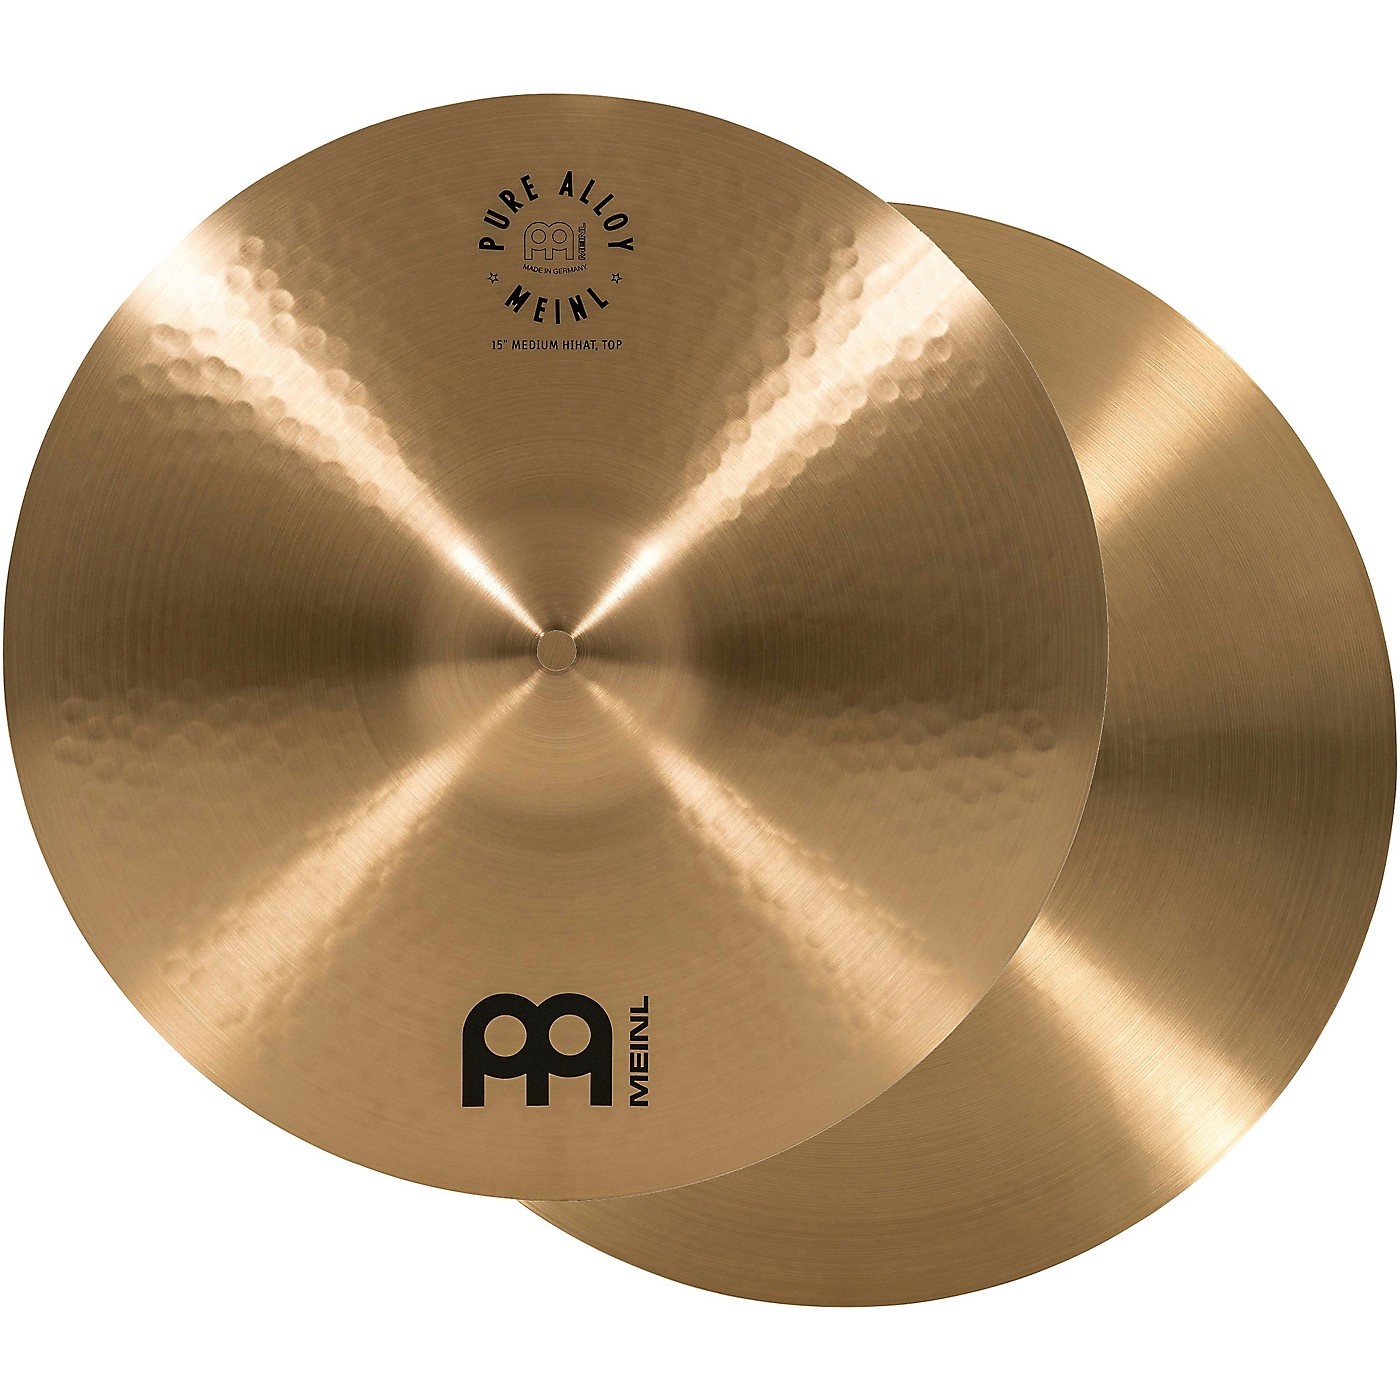 Meinl Pure Alloy Traditional Medium Hi-Hat Cymbal Pair thumbnail